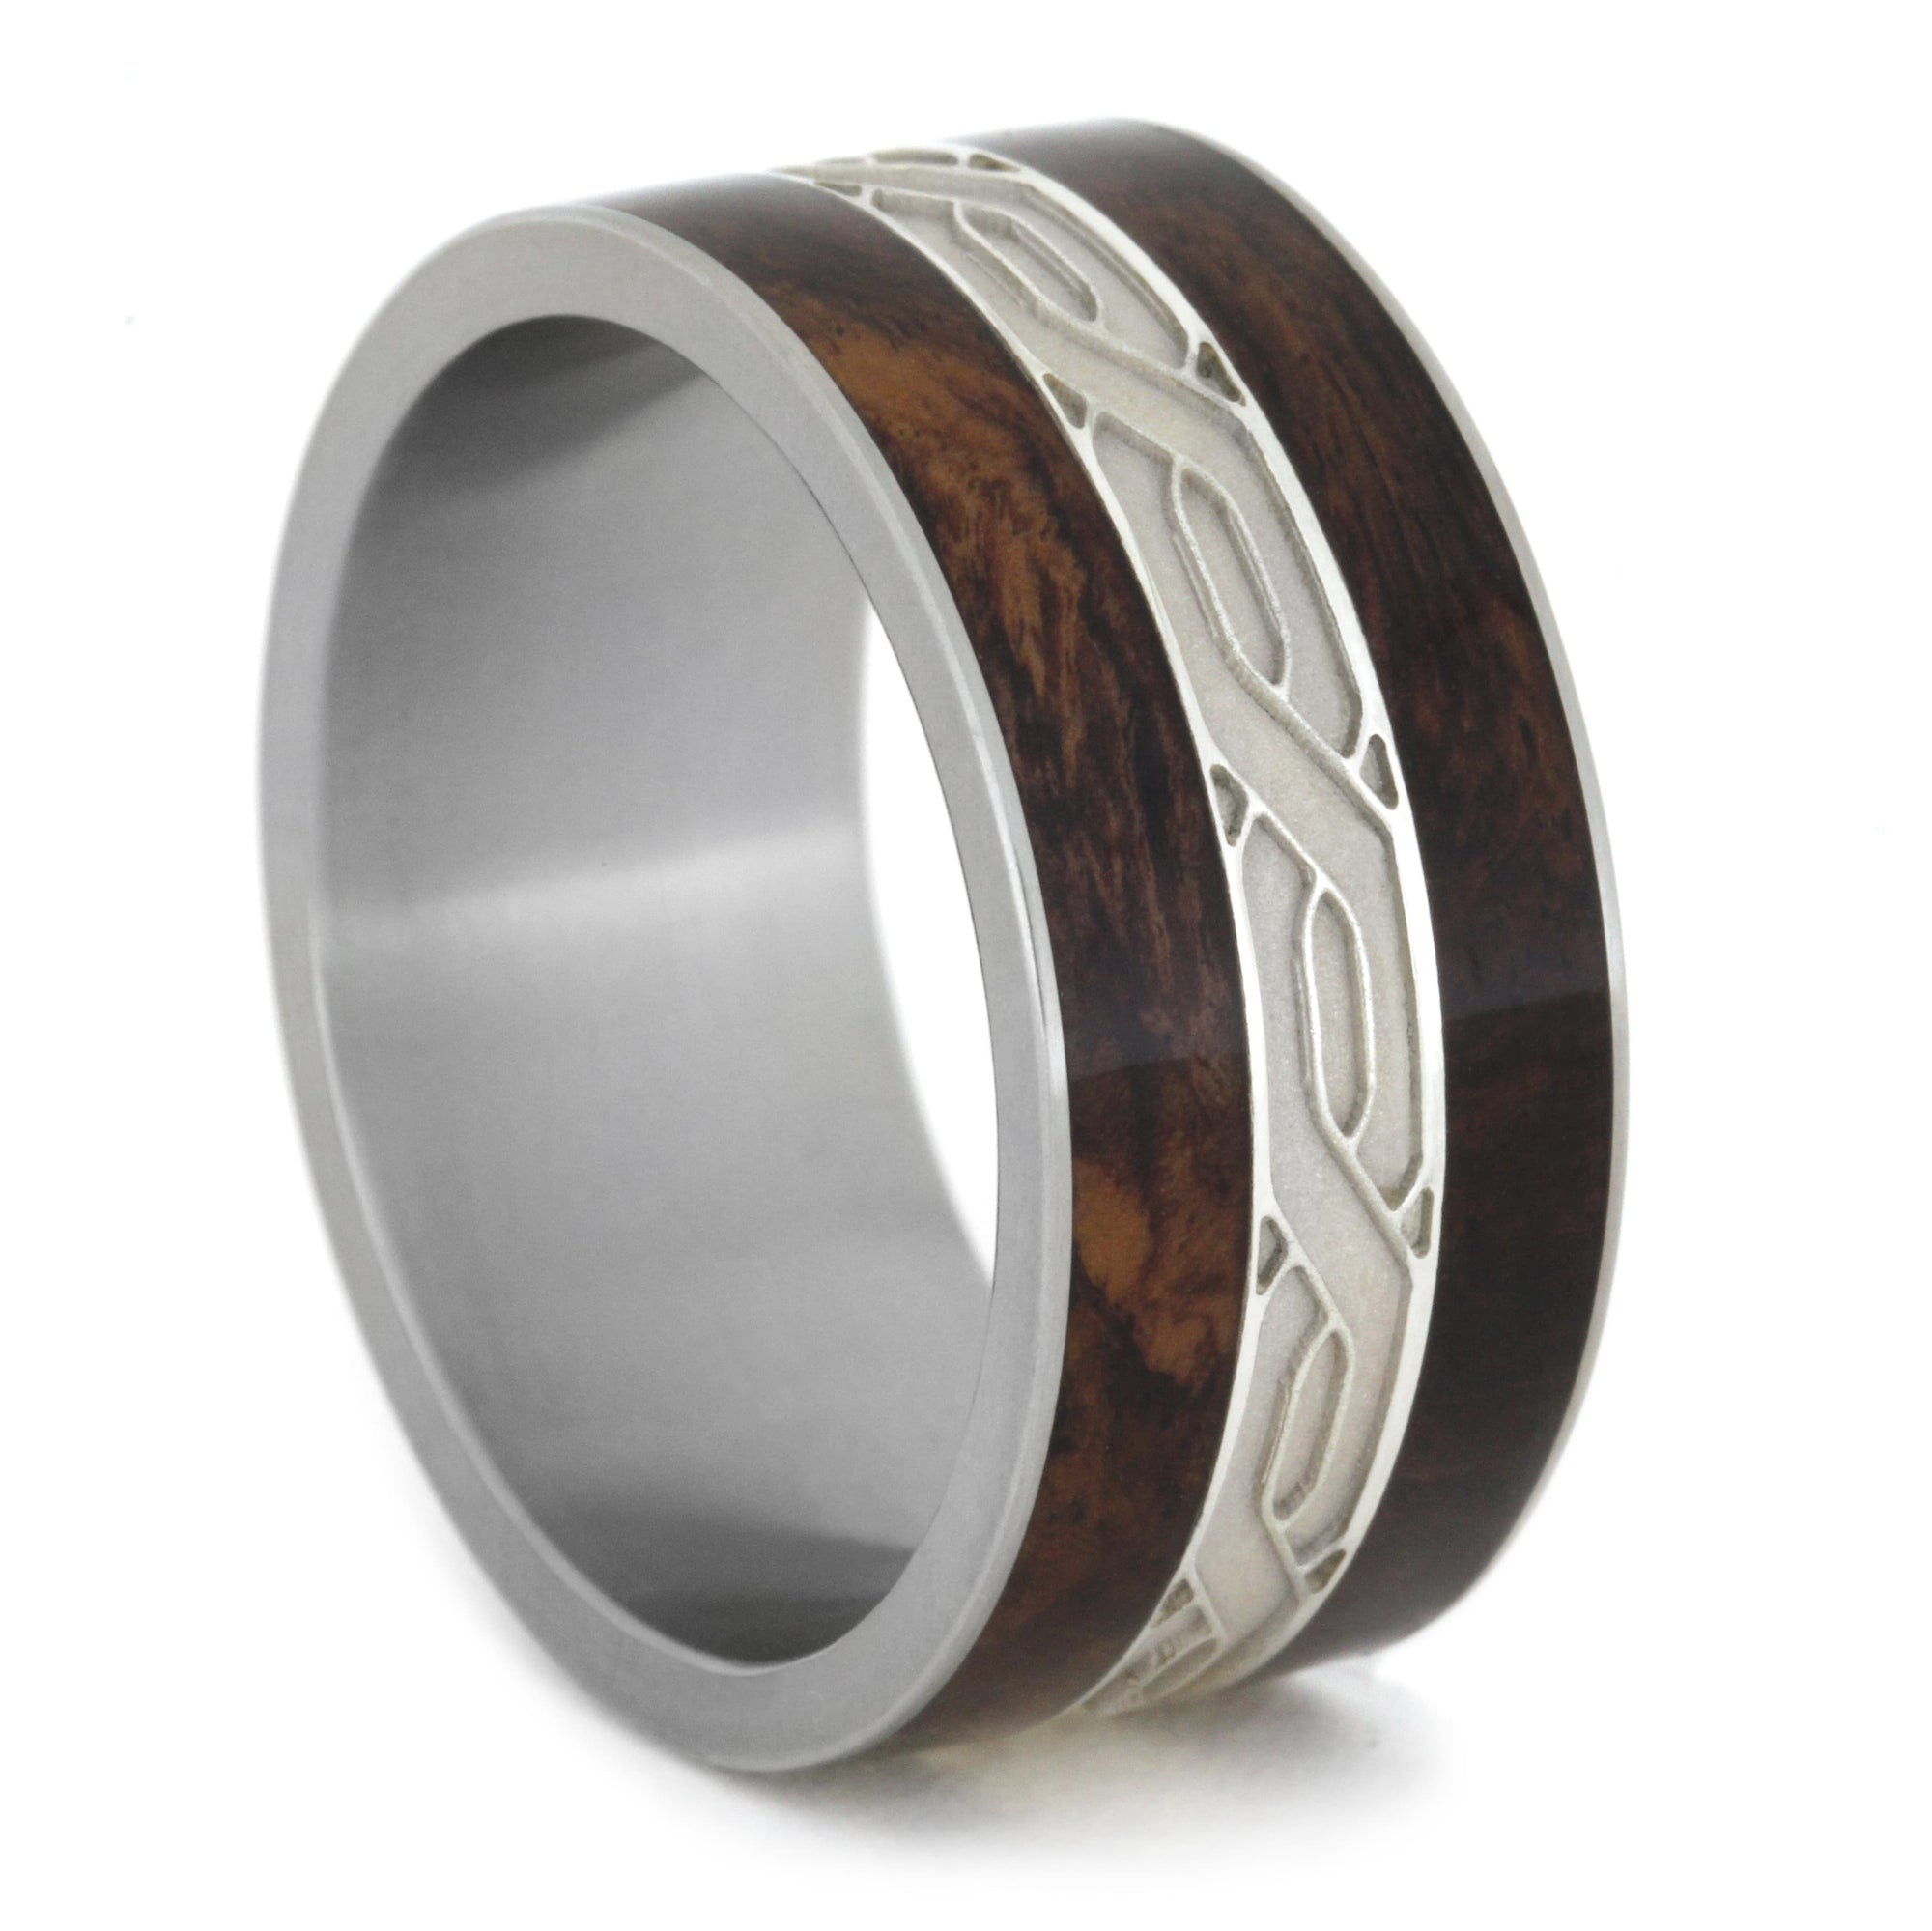 mens wedding band silver celtic knot rings honduran rosewood burl